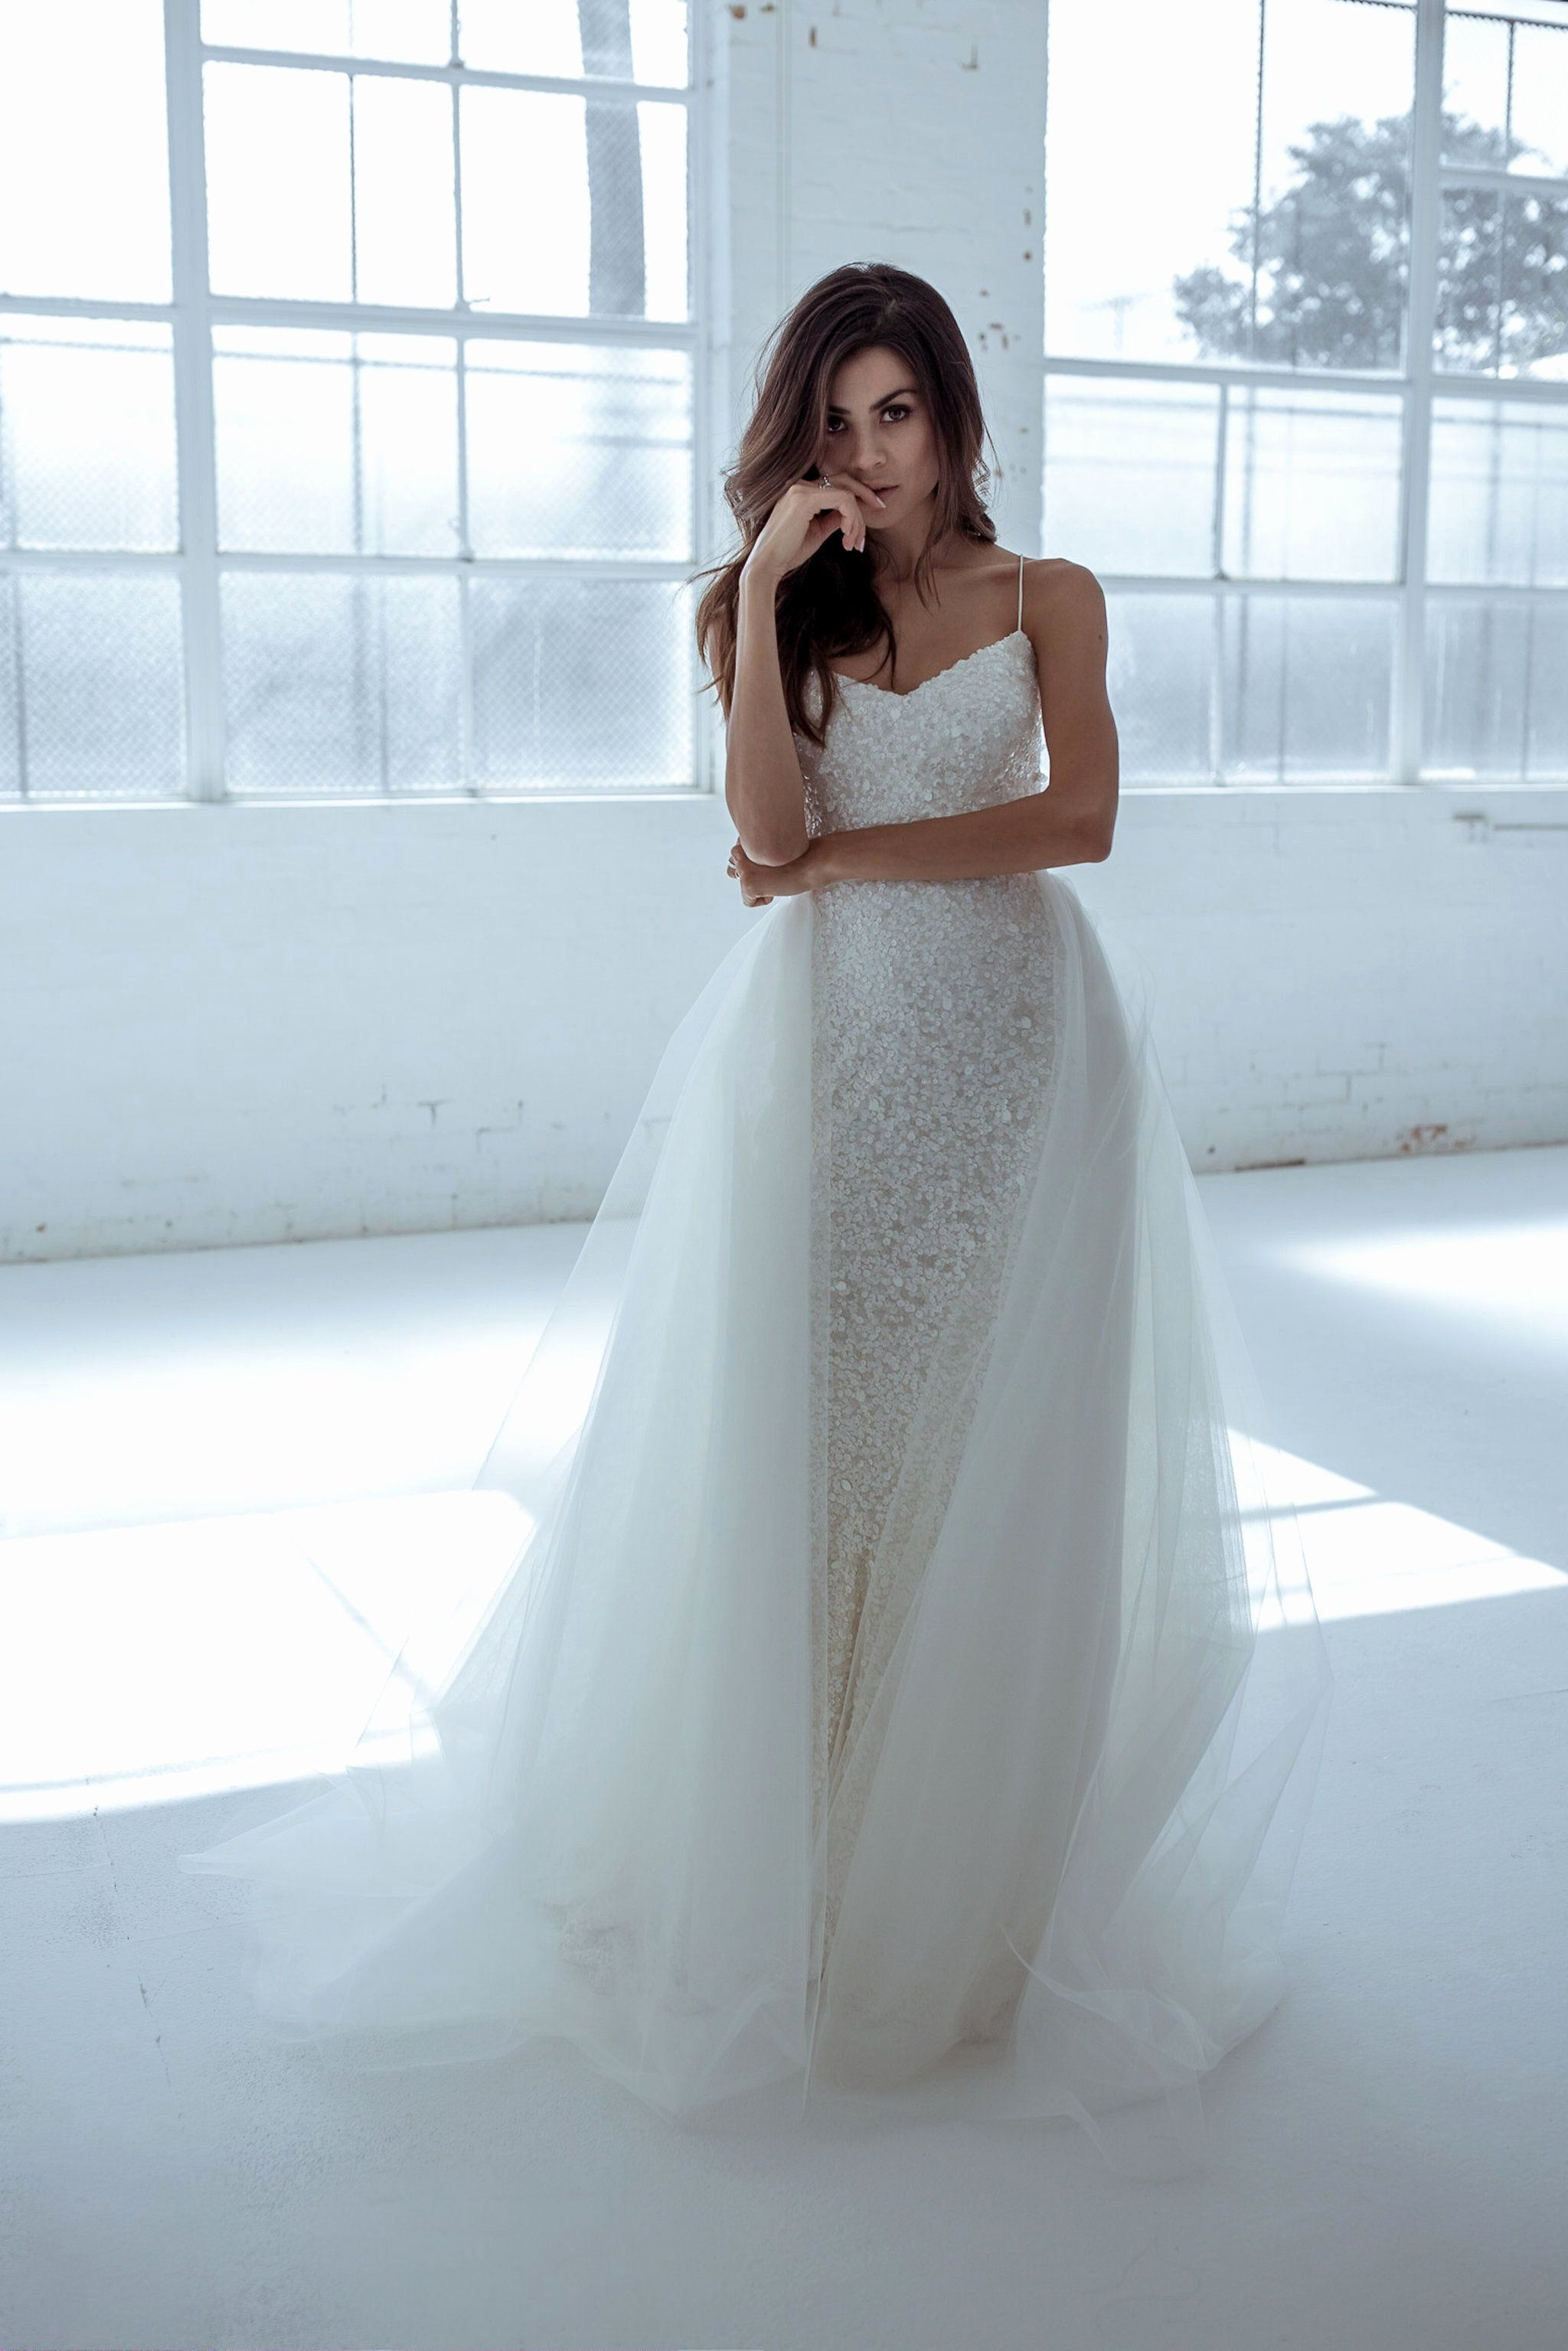 How Much Does Dry Cleaning A Wedding Dress Cost Awesome